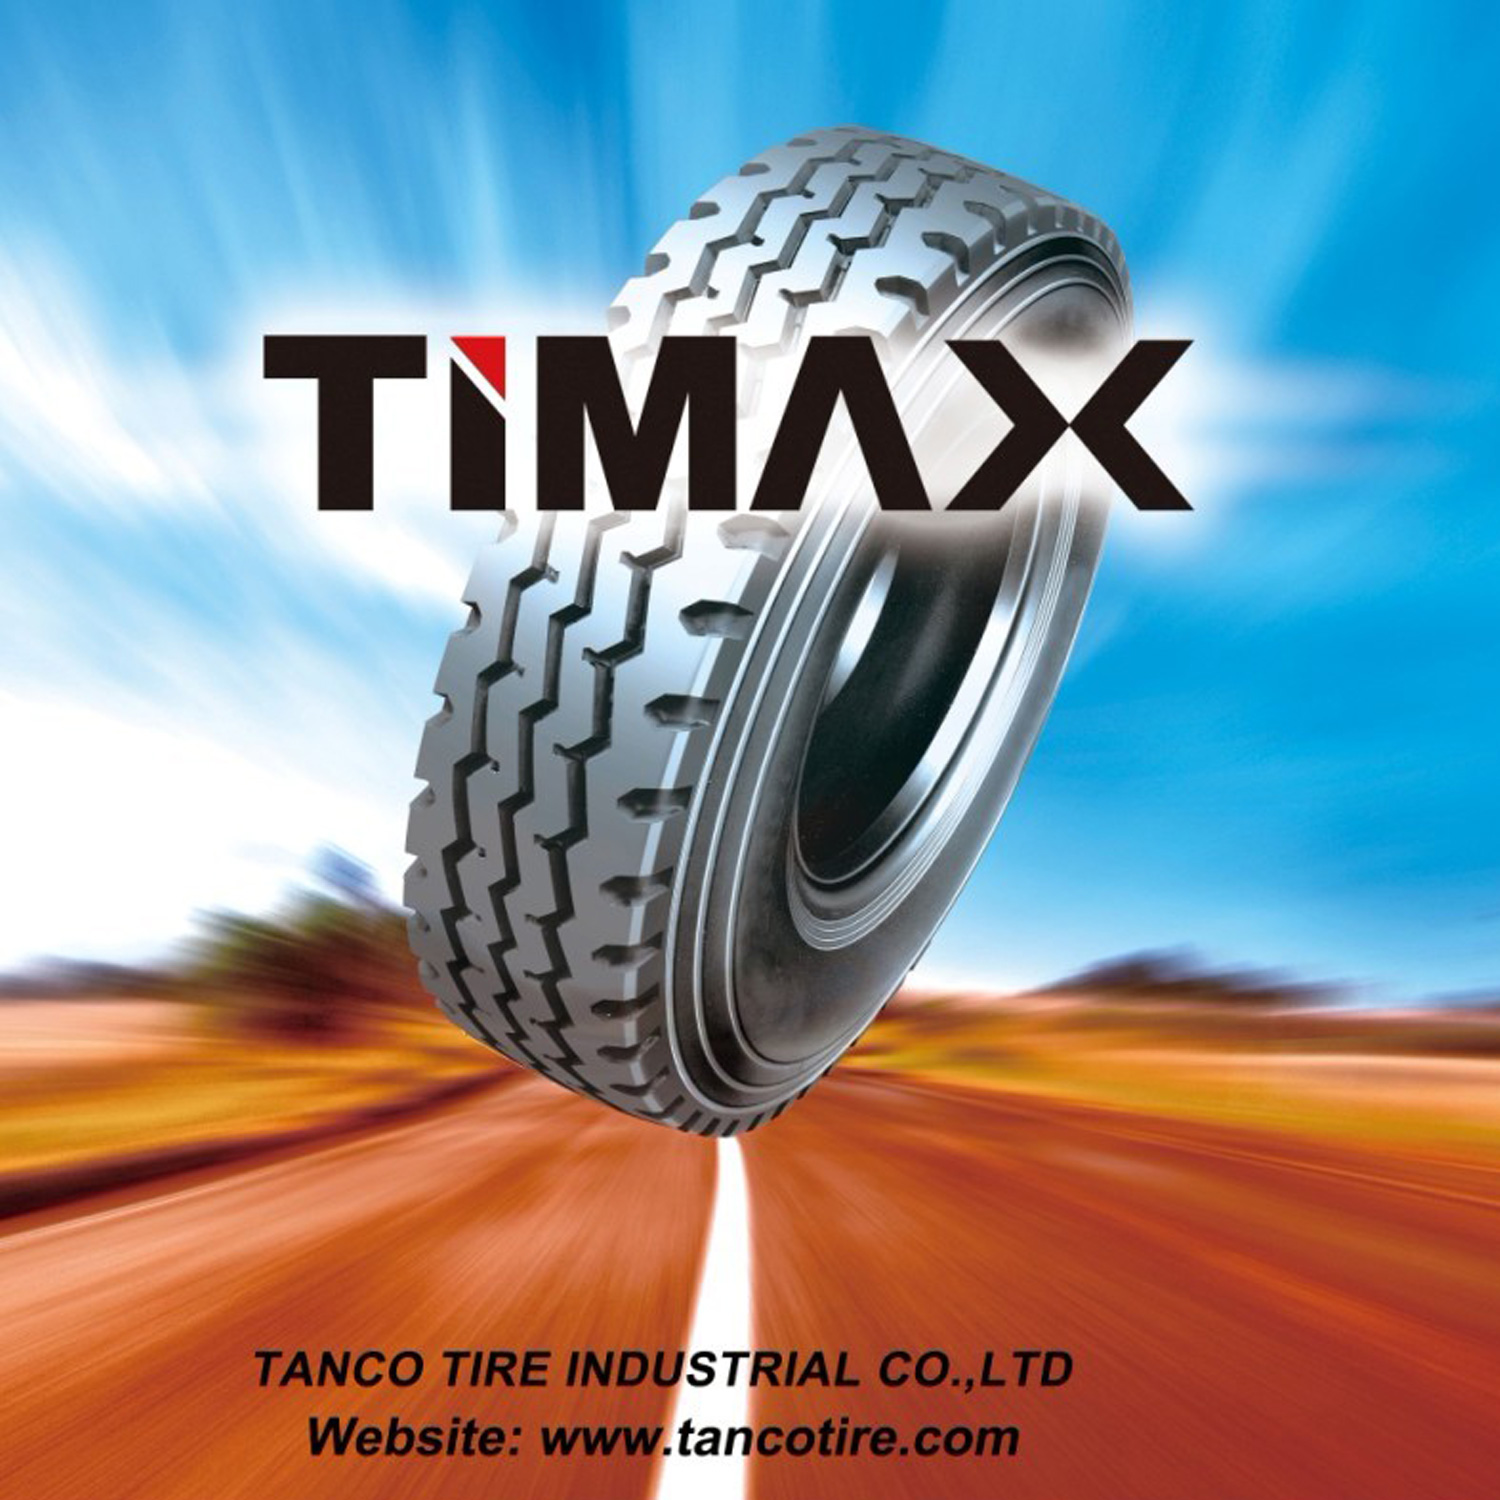 Tanco Tire,Timax Tyre Array image90